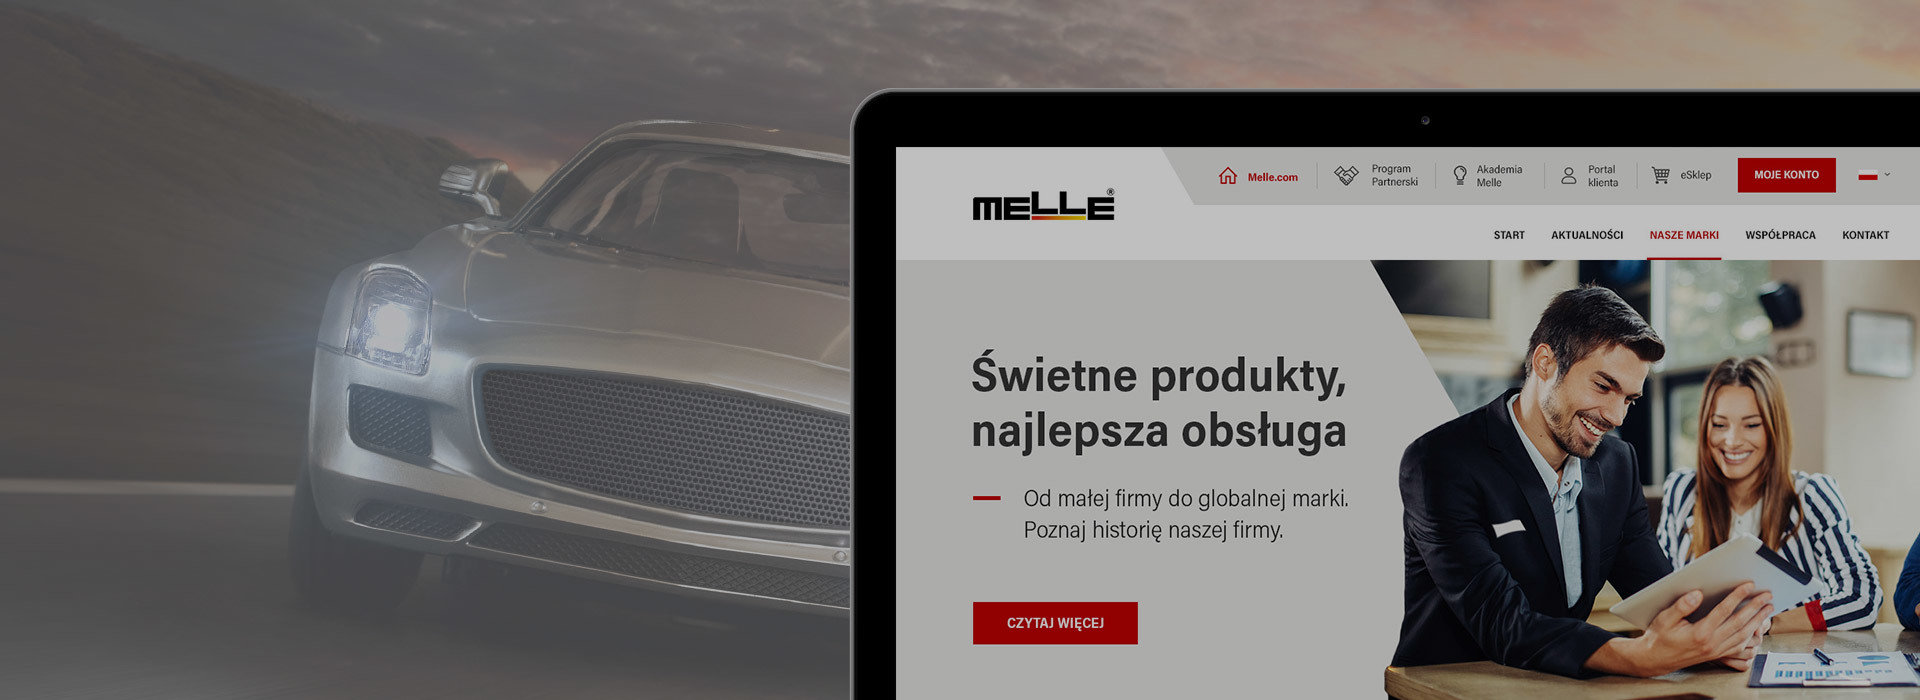 Melle - rebranding of the clients online B2B and B2C ecosytems